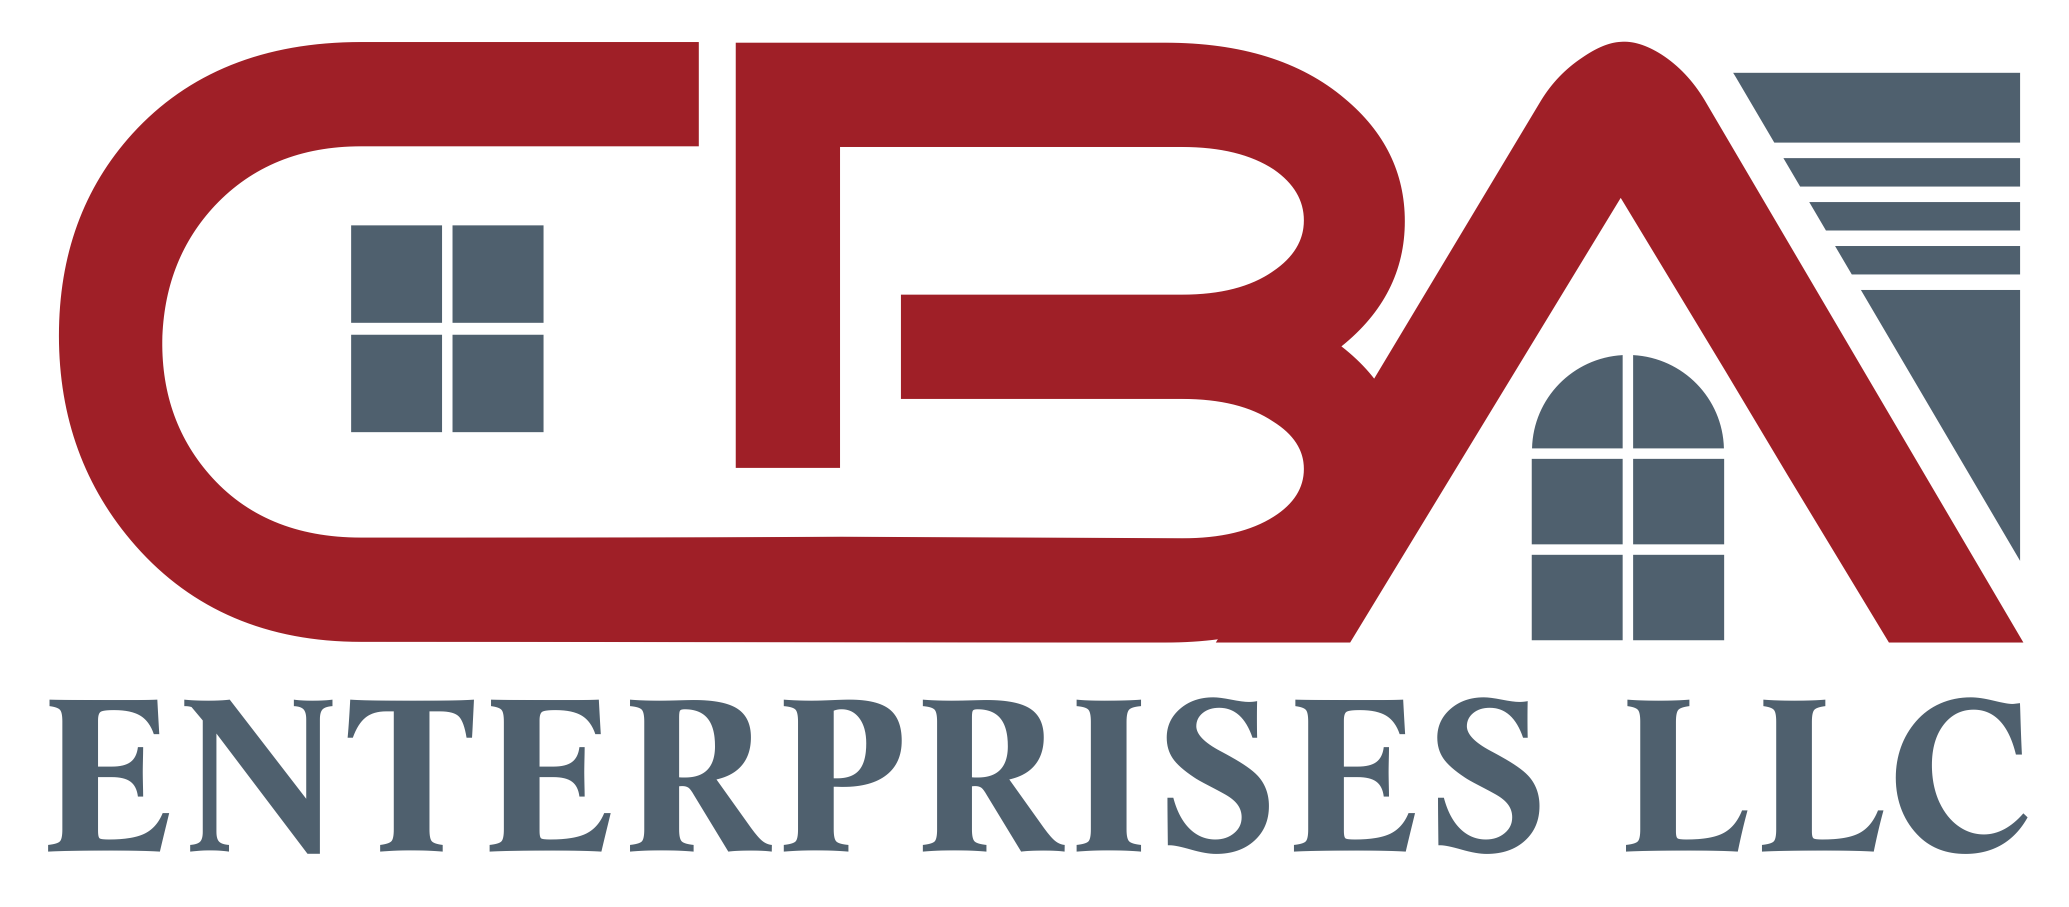 CBA Enterprises, LLC